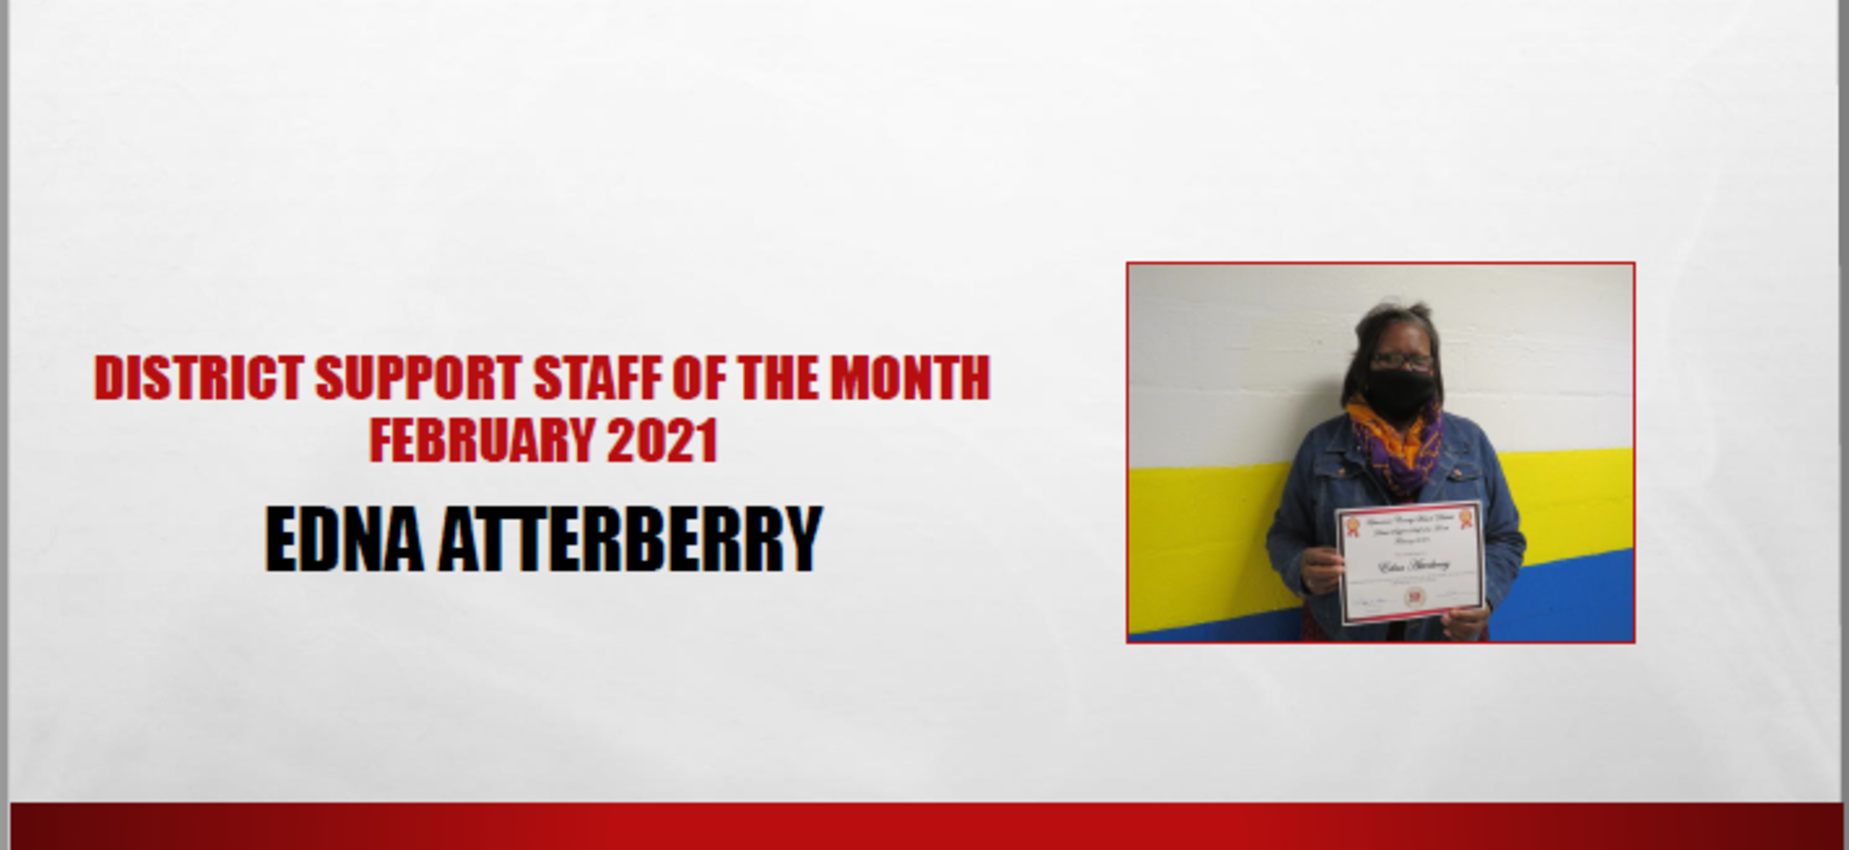 February 2021 District Support Staff of the Month Edna Atterberry